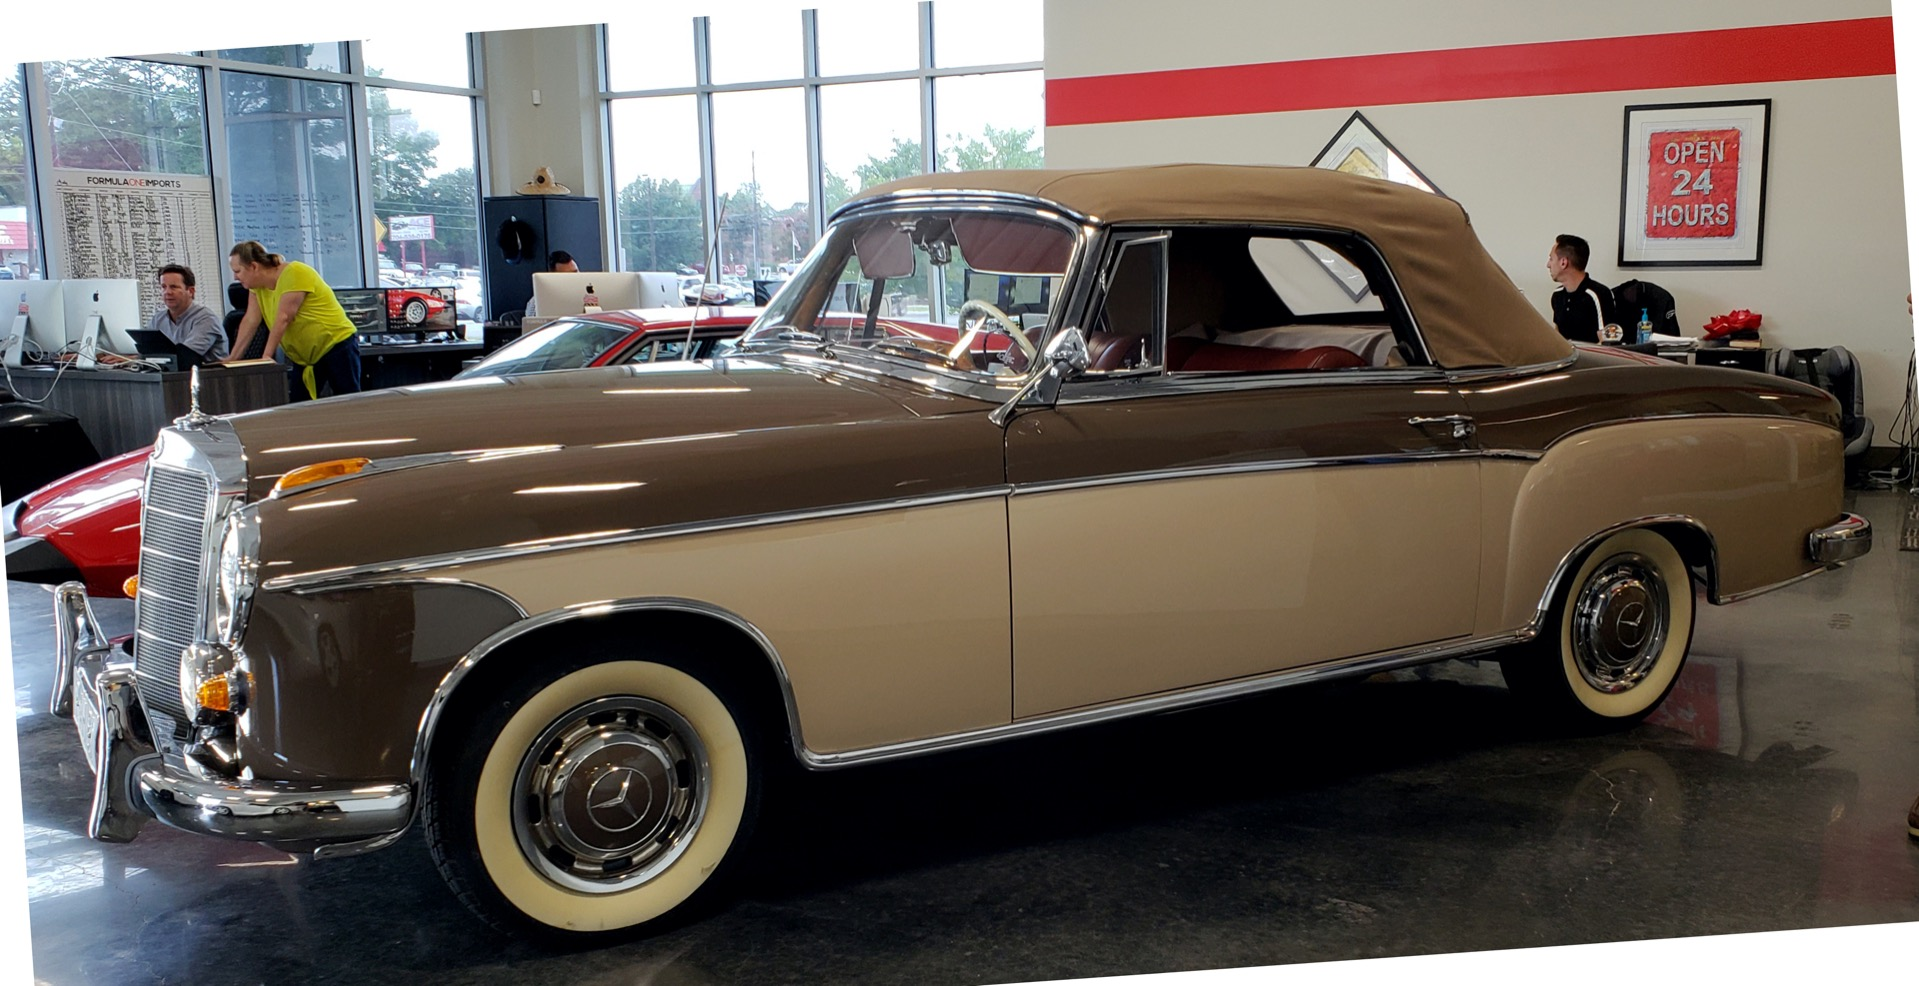 Used 1957 Mercedes-Benz 220 S Cabriolet - Full Restoration for sale Sold at Formula Imports in Charlotte NC 28227 2